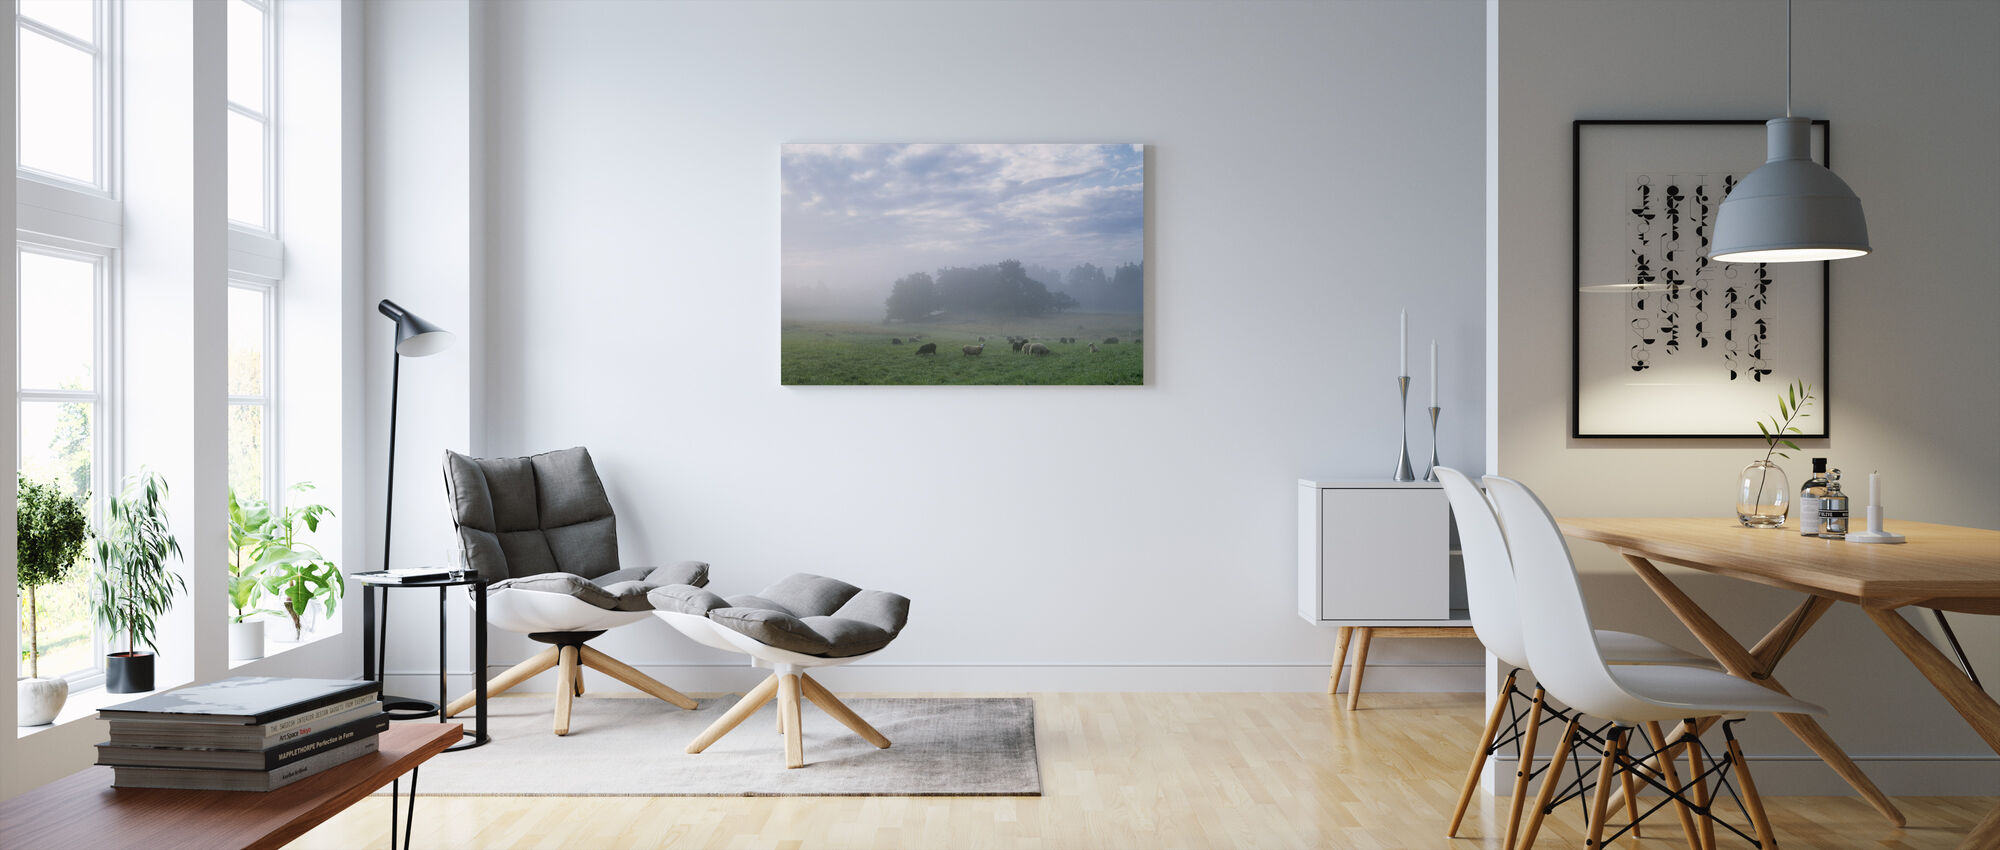 Sheep on Pasture Field in Morning Fog - Canvas print - Living Room